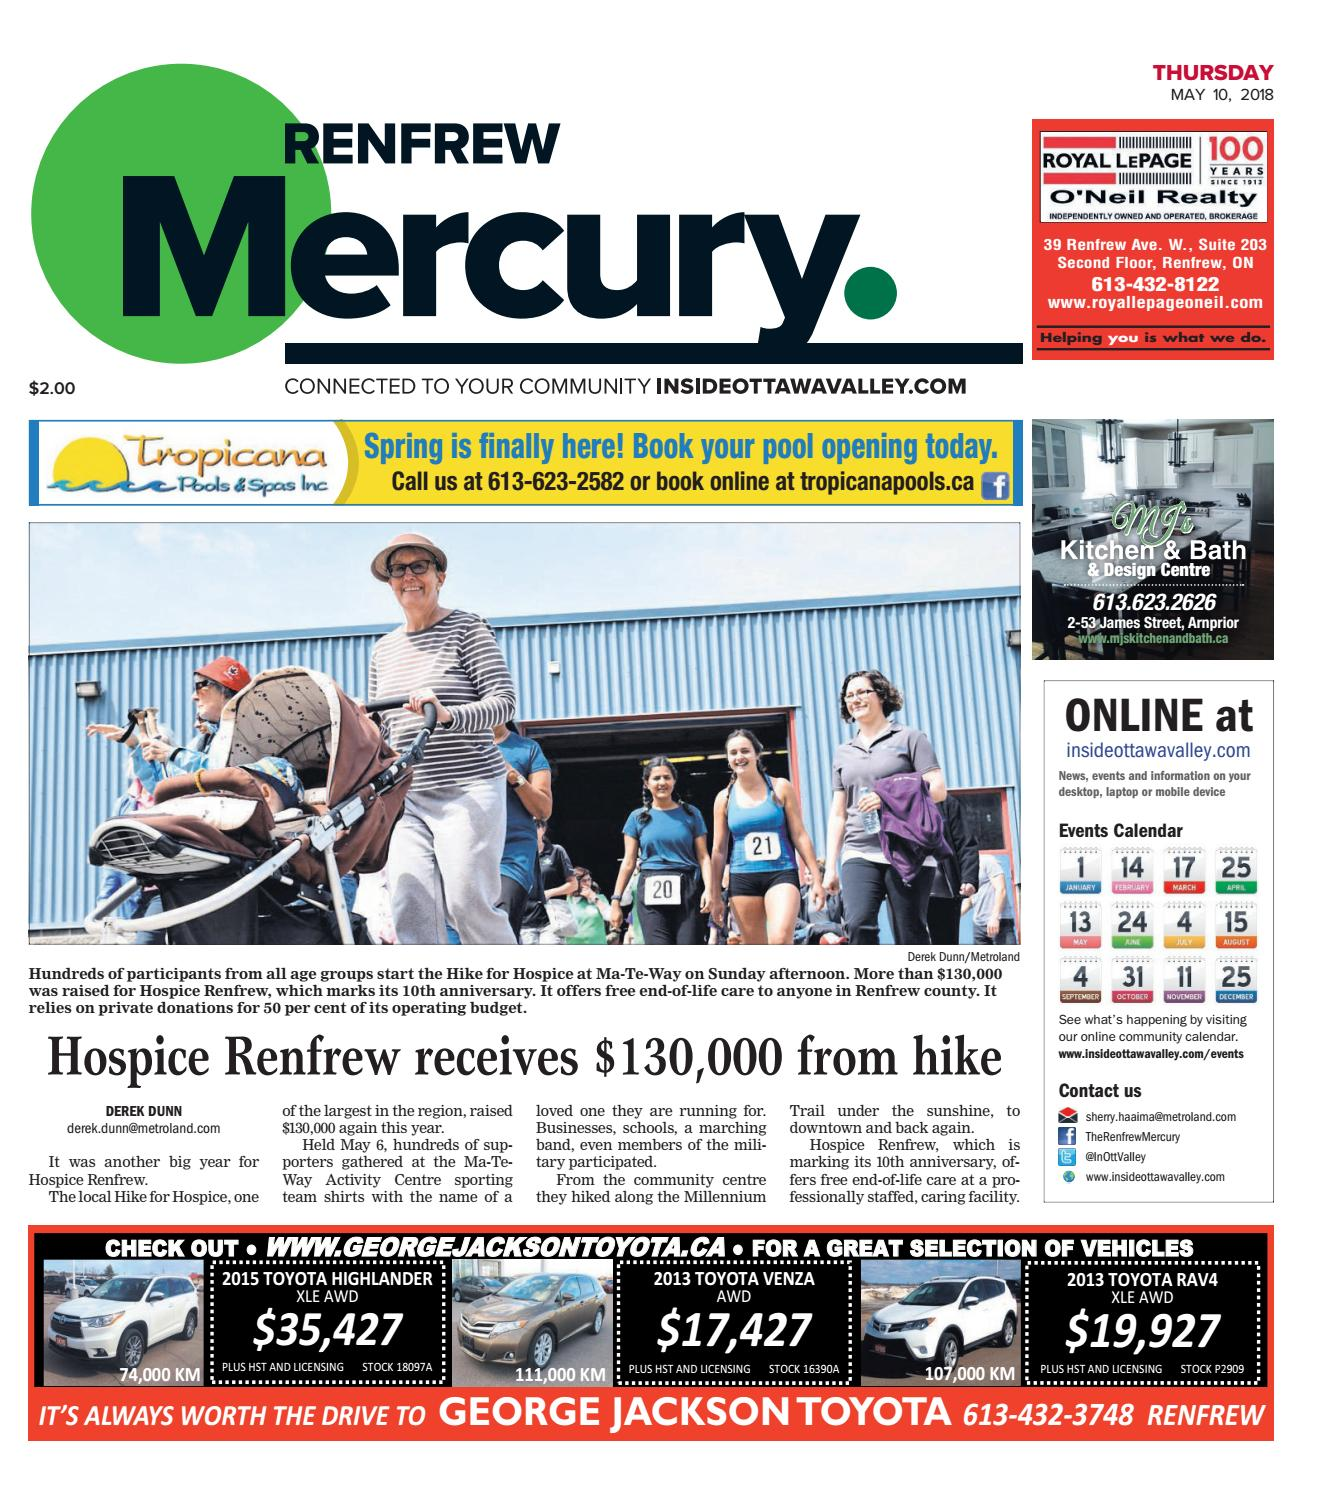 Rnf A 20180510 By Metroland East Renfrew Mercury Issuu Over 77 Lbs Scrap High Grade Circuit Boards For Gold Recovery